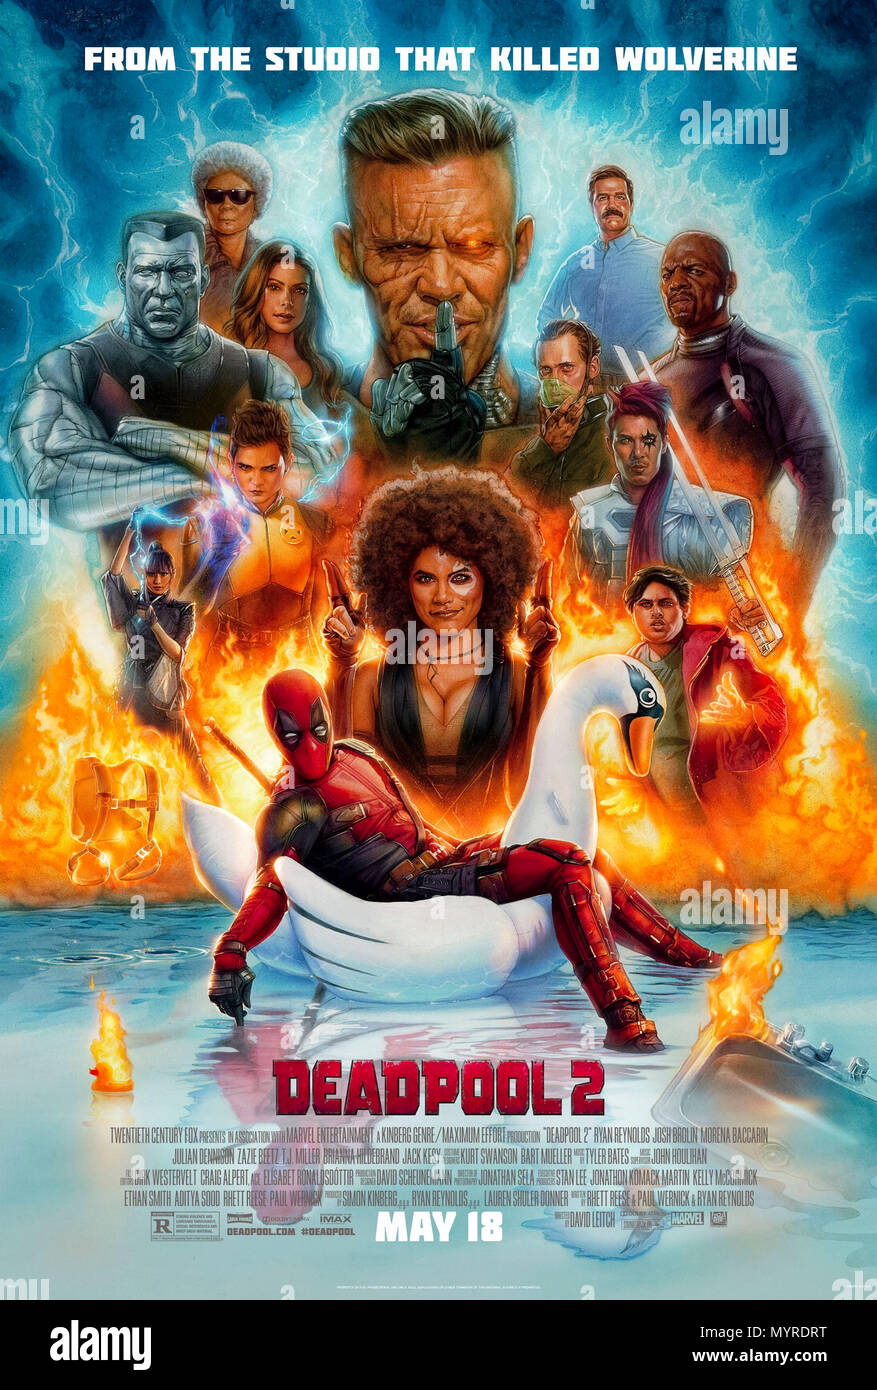 Deadpool 2 (2018) directed by David Leitch and starring Ryan Reynolds, Josh Brolin, and Morena Baccarin. Wade Wilson returns for more irreverent fun. - Stock Image